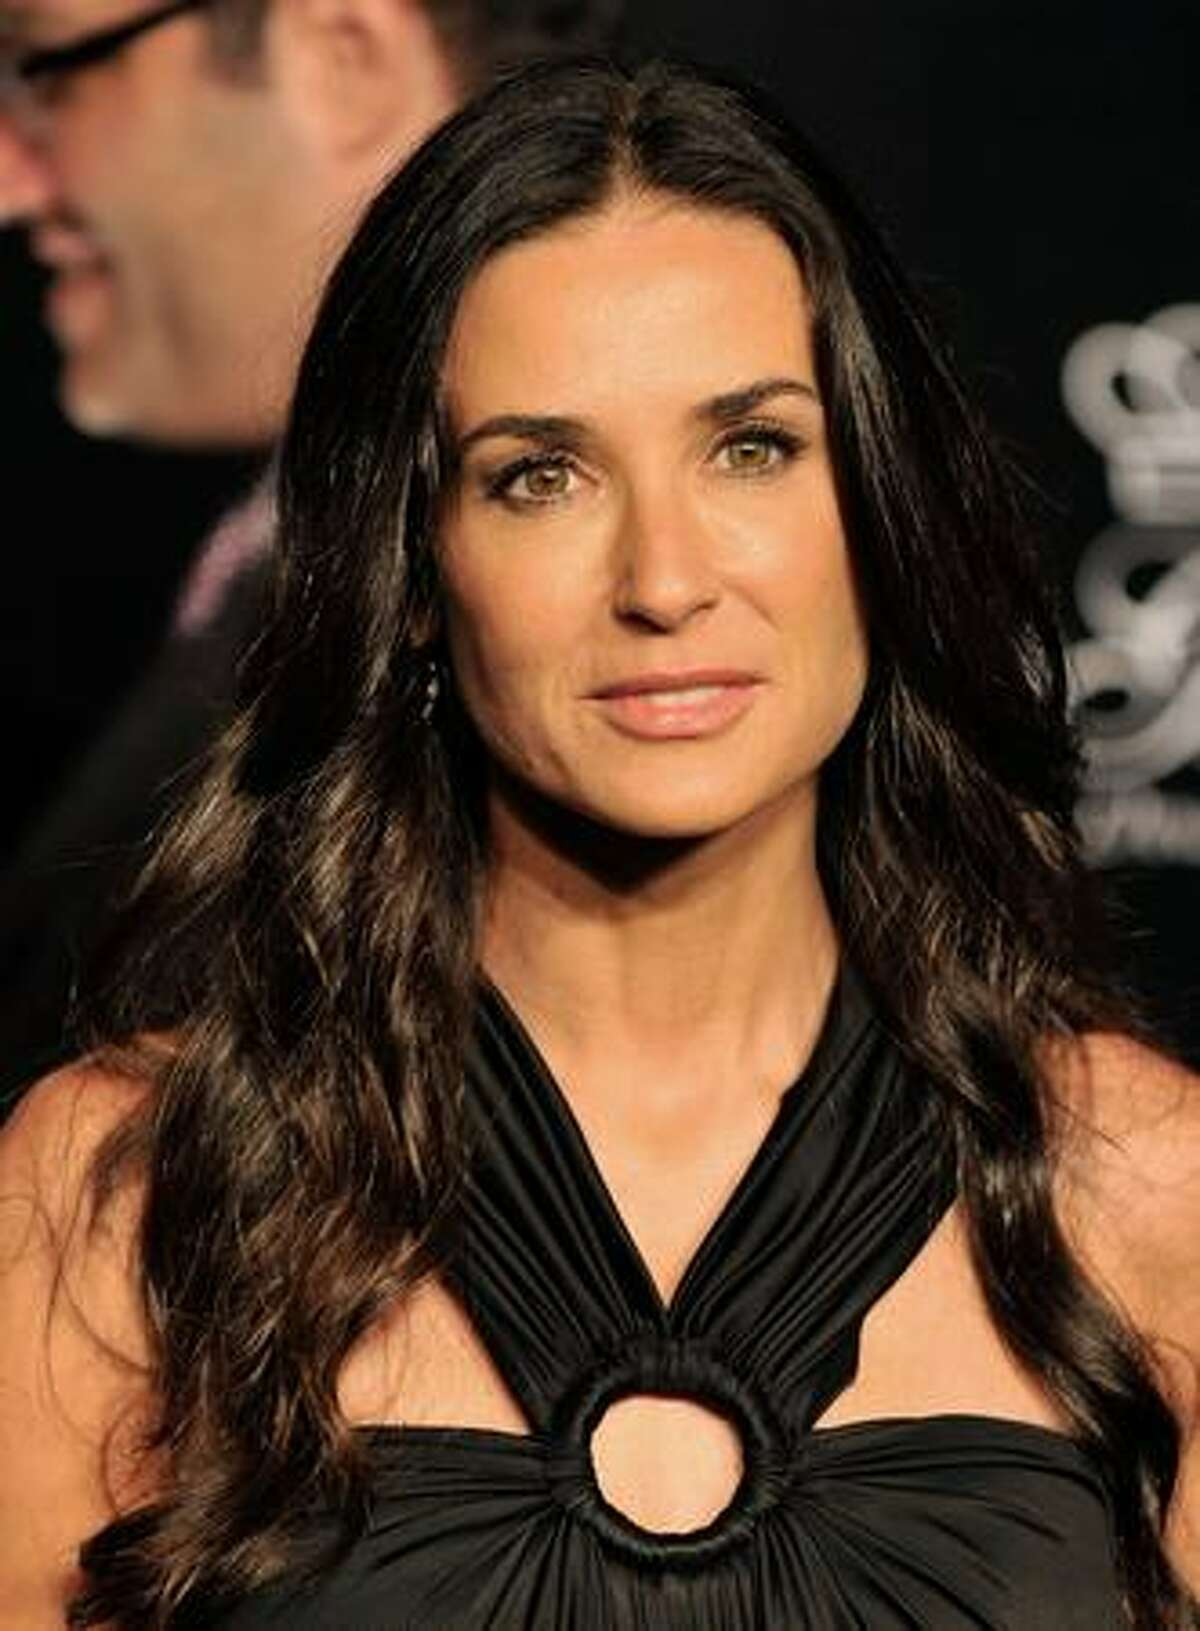 Actress Demi Moore arrives at the Rodeo Drive Walk of Style Award honoring Princess Grace (Kelly) of Monaco and Cartier in Beverly Hills, California.